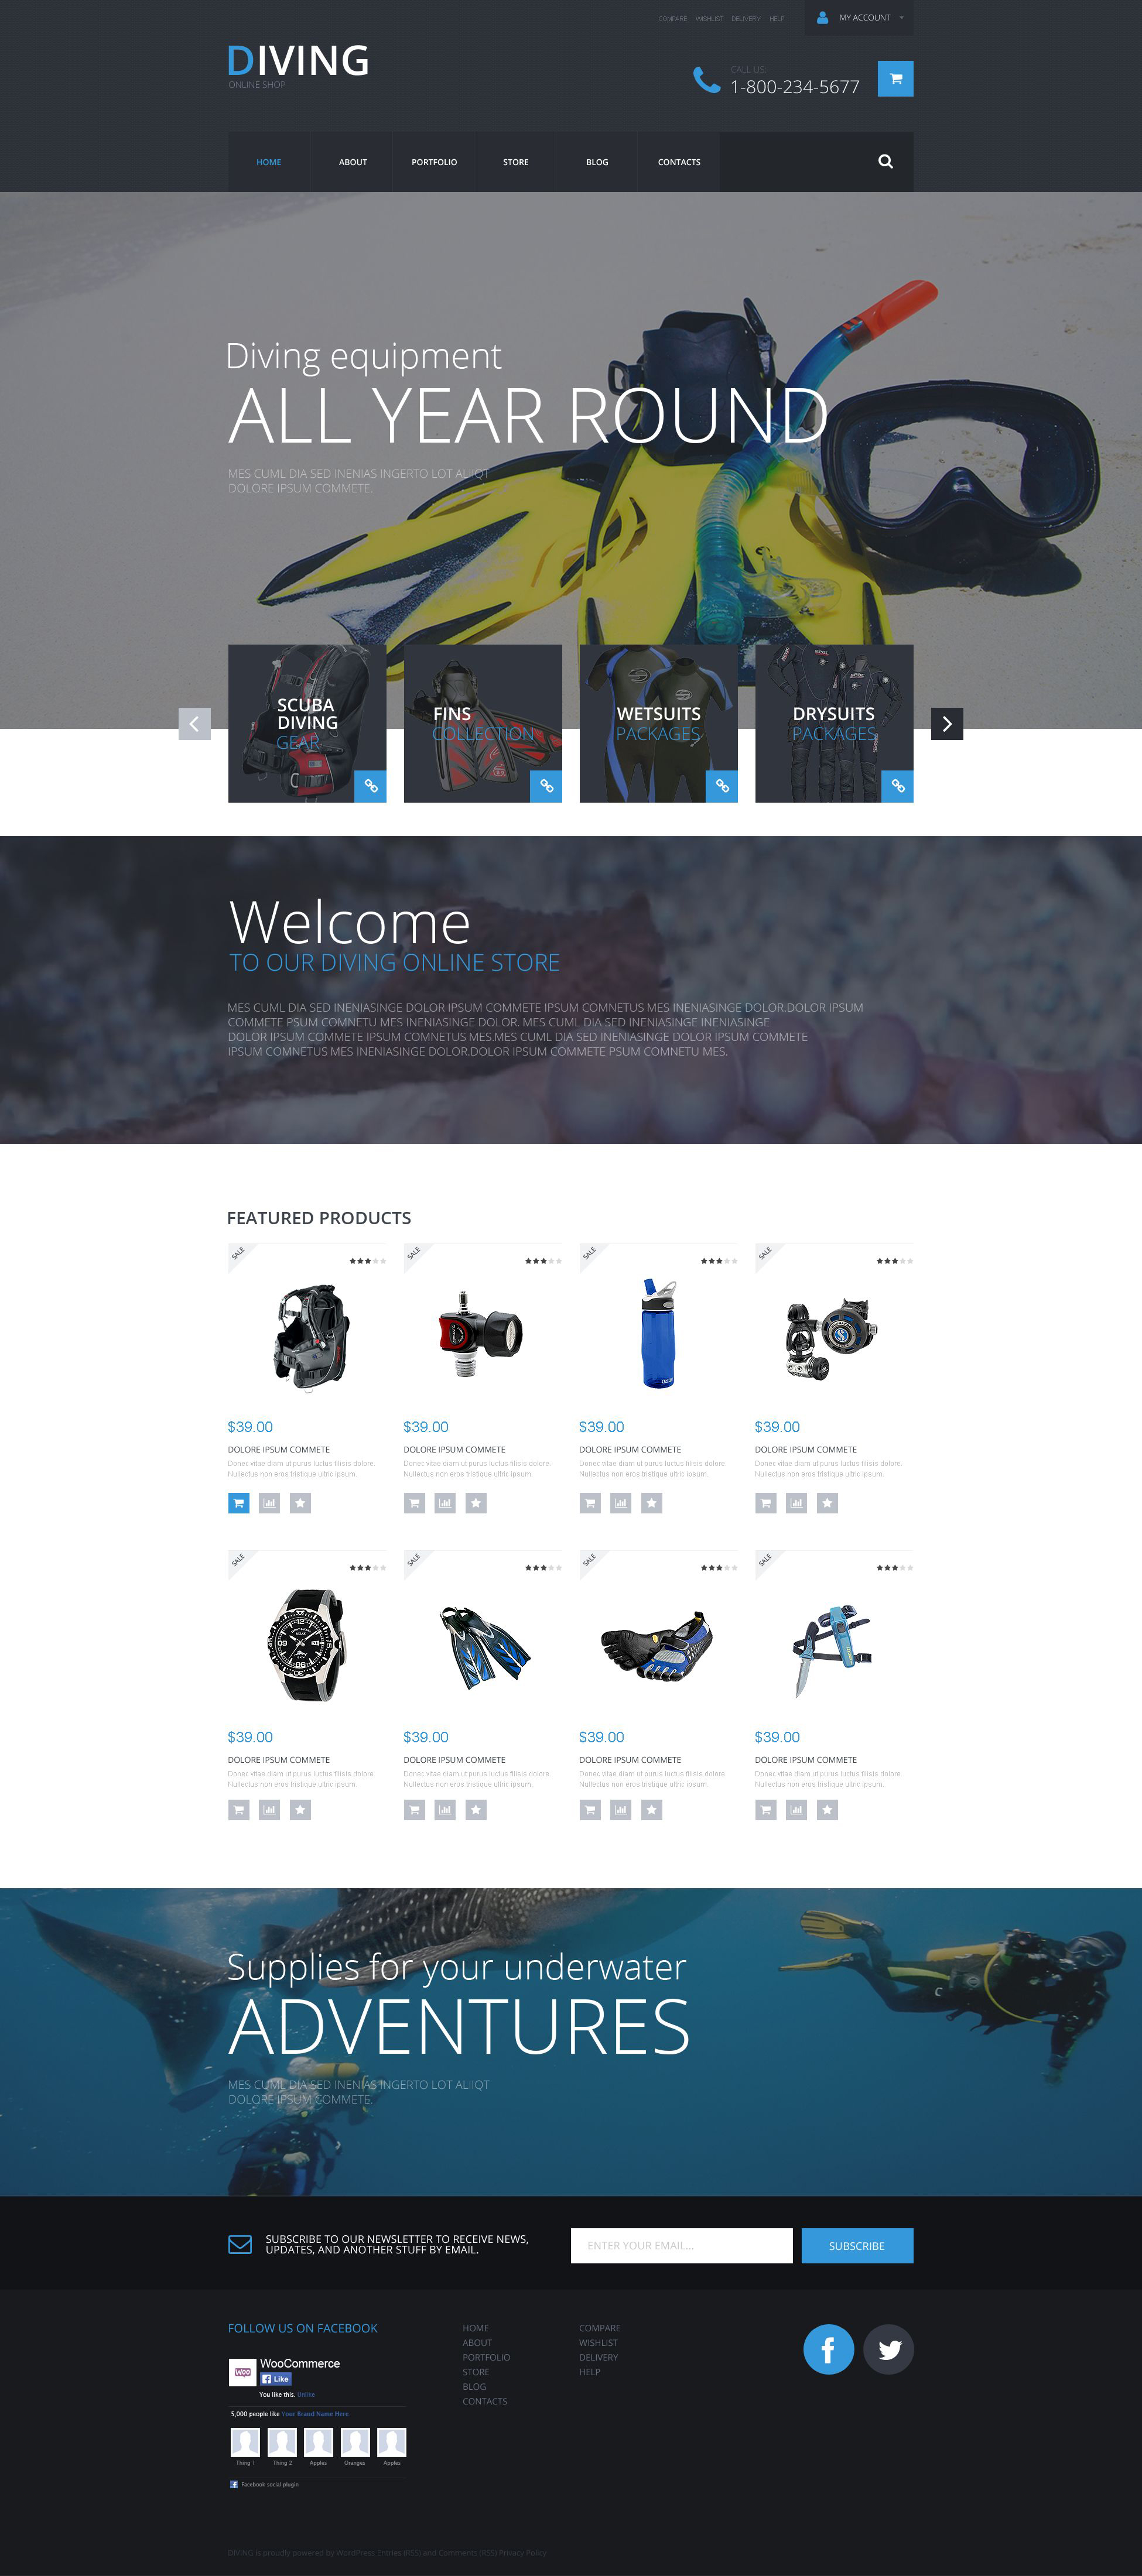 The Diving Shop WooCommerce Design 53544, one of the best WooCommerce themes of its kind (travel, most popular), also known as diving shop WooCommerce template, sport WooCommerce template, aqualung WooCommerce template, submarine WooCommerce template, oxygen WooCommerce template, flippers WooCommerce template, mask WooCommerce template, reef WooCommerce template, diving-suit WooCommerce template, photography WooCommerce template, camera WooCommerce template, training WooCommerce template, services WooCommerce template, trainer WooCommerce template, ring-buoy WooCommerce template, life-guard WooCommerce template, subscription WooCommerce template, rules WooCommerce template, travel WooCommerce template, equipment and related with diving shop, sport, aqualung, submarine, oxygen, flippers, mask, reef, diving-suit, photography, camera, training, services, trainer, ring-buoy, life-guard, subscription, rules, travel, equipment, etc.